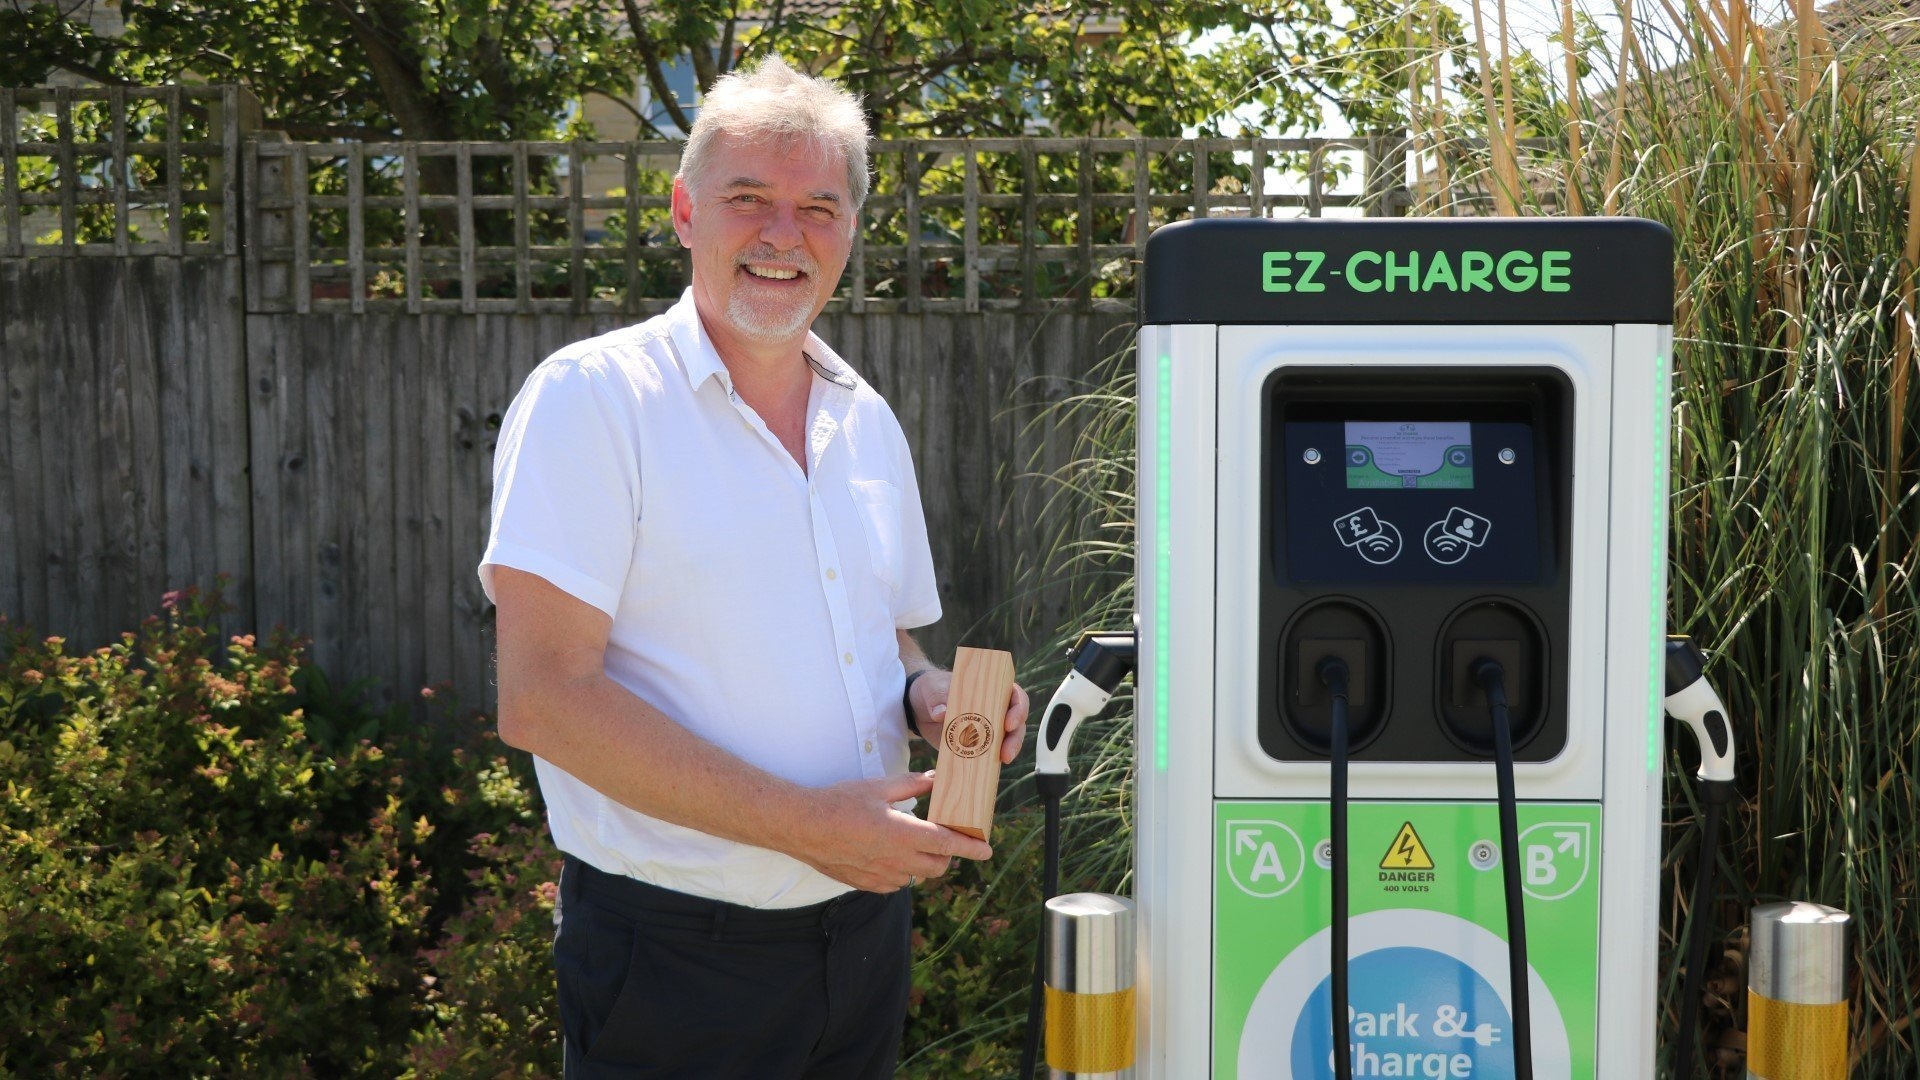 Bicester company wins search for leading green transport and infrastructure innovators. Image: Phil Shadbolt, Chairman at EZ-Charge, with one of six EZ-Charge units located at Bicester Cattle Market